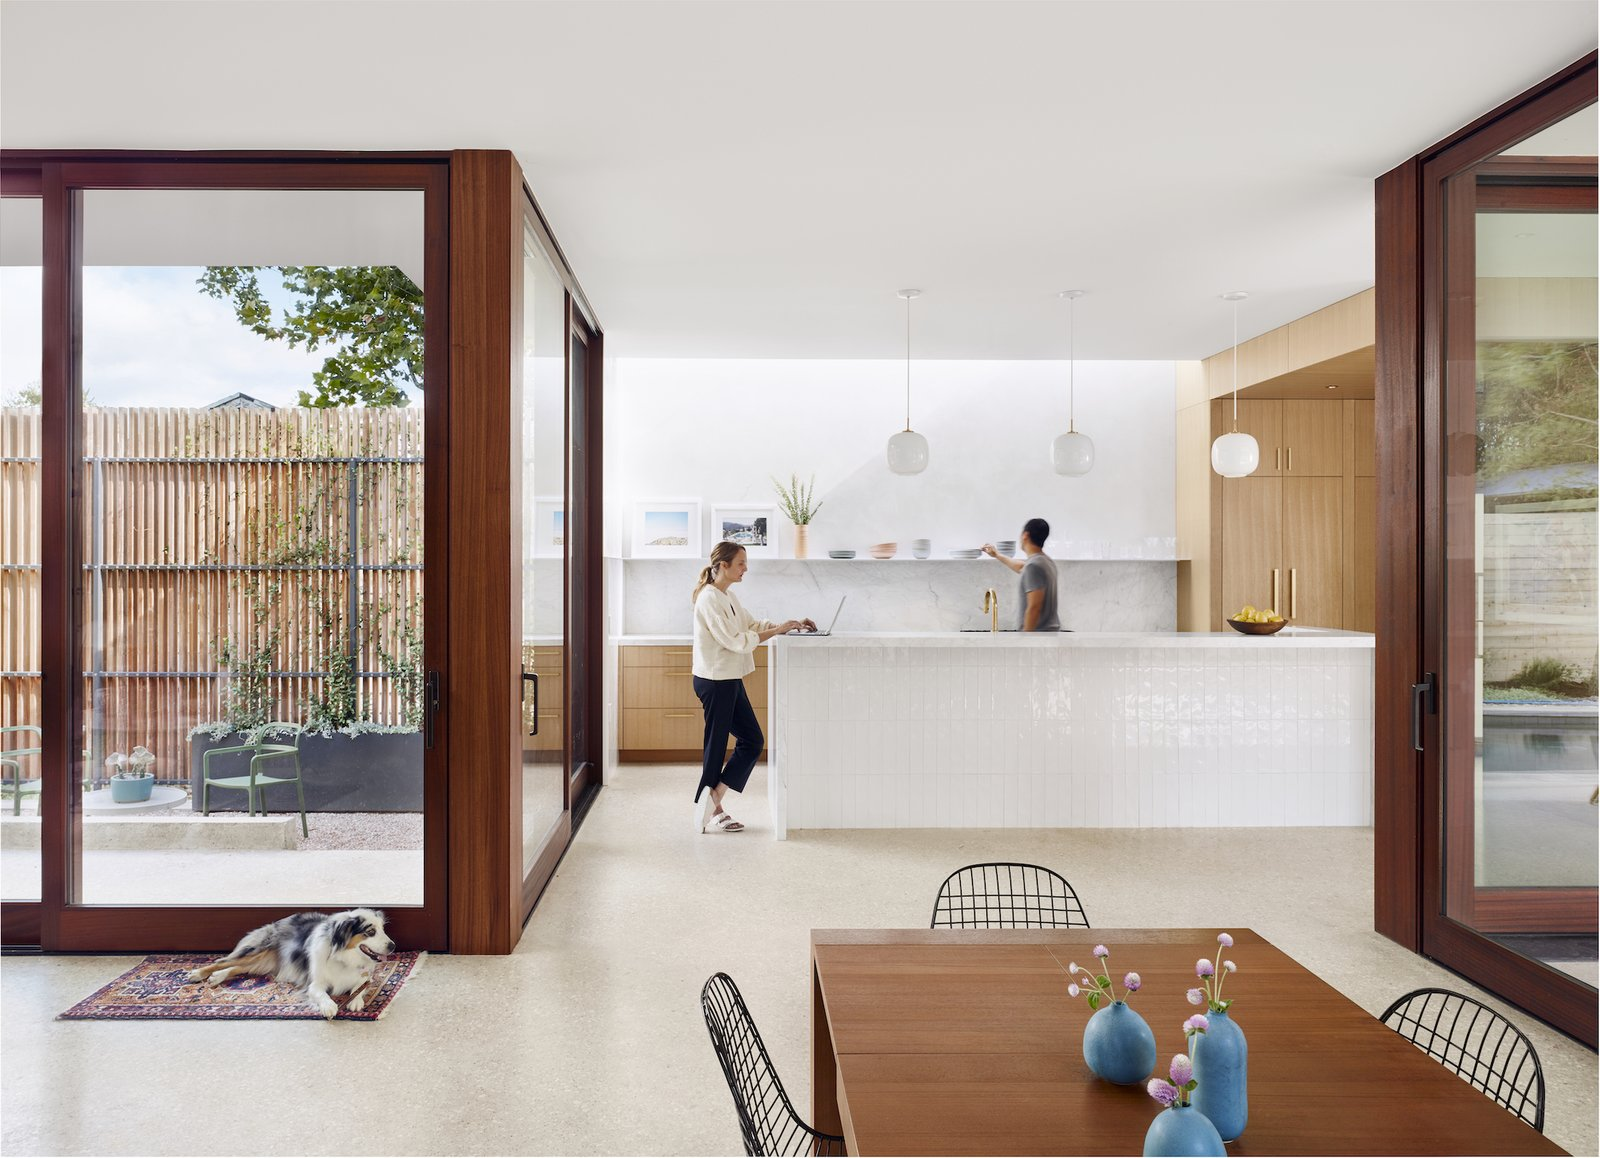 Kitchen at Hemlock Ave. House by Chioco Design.